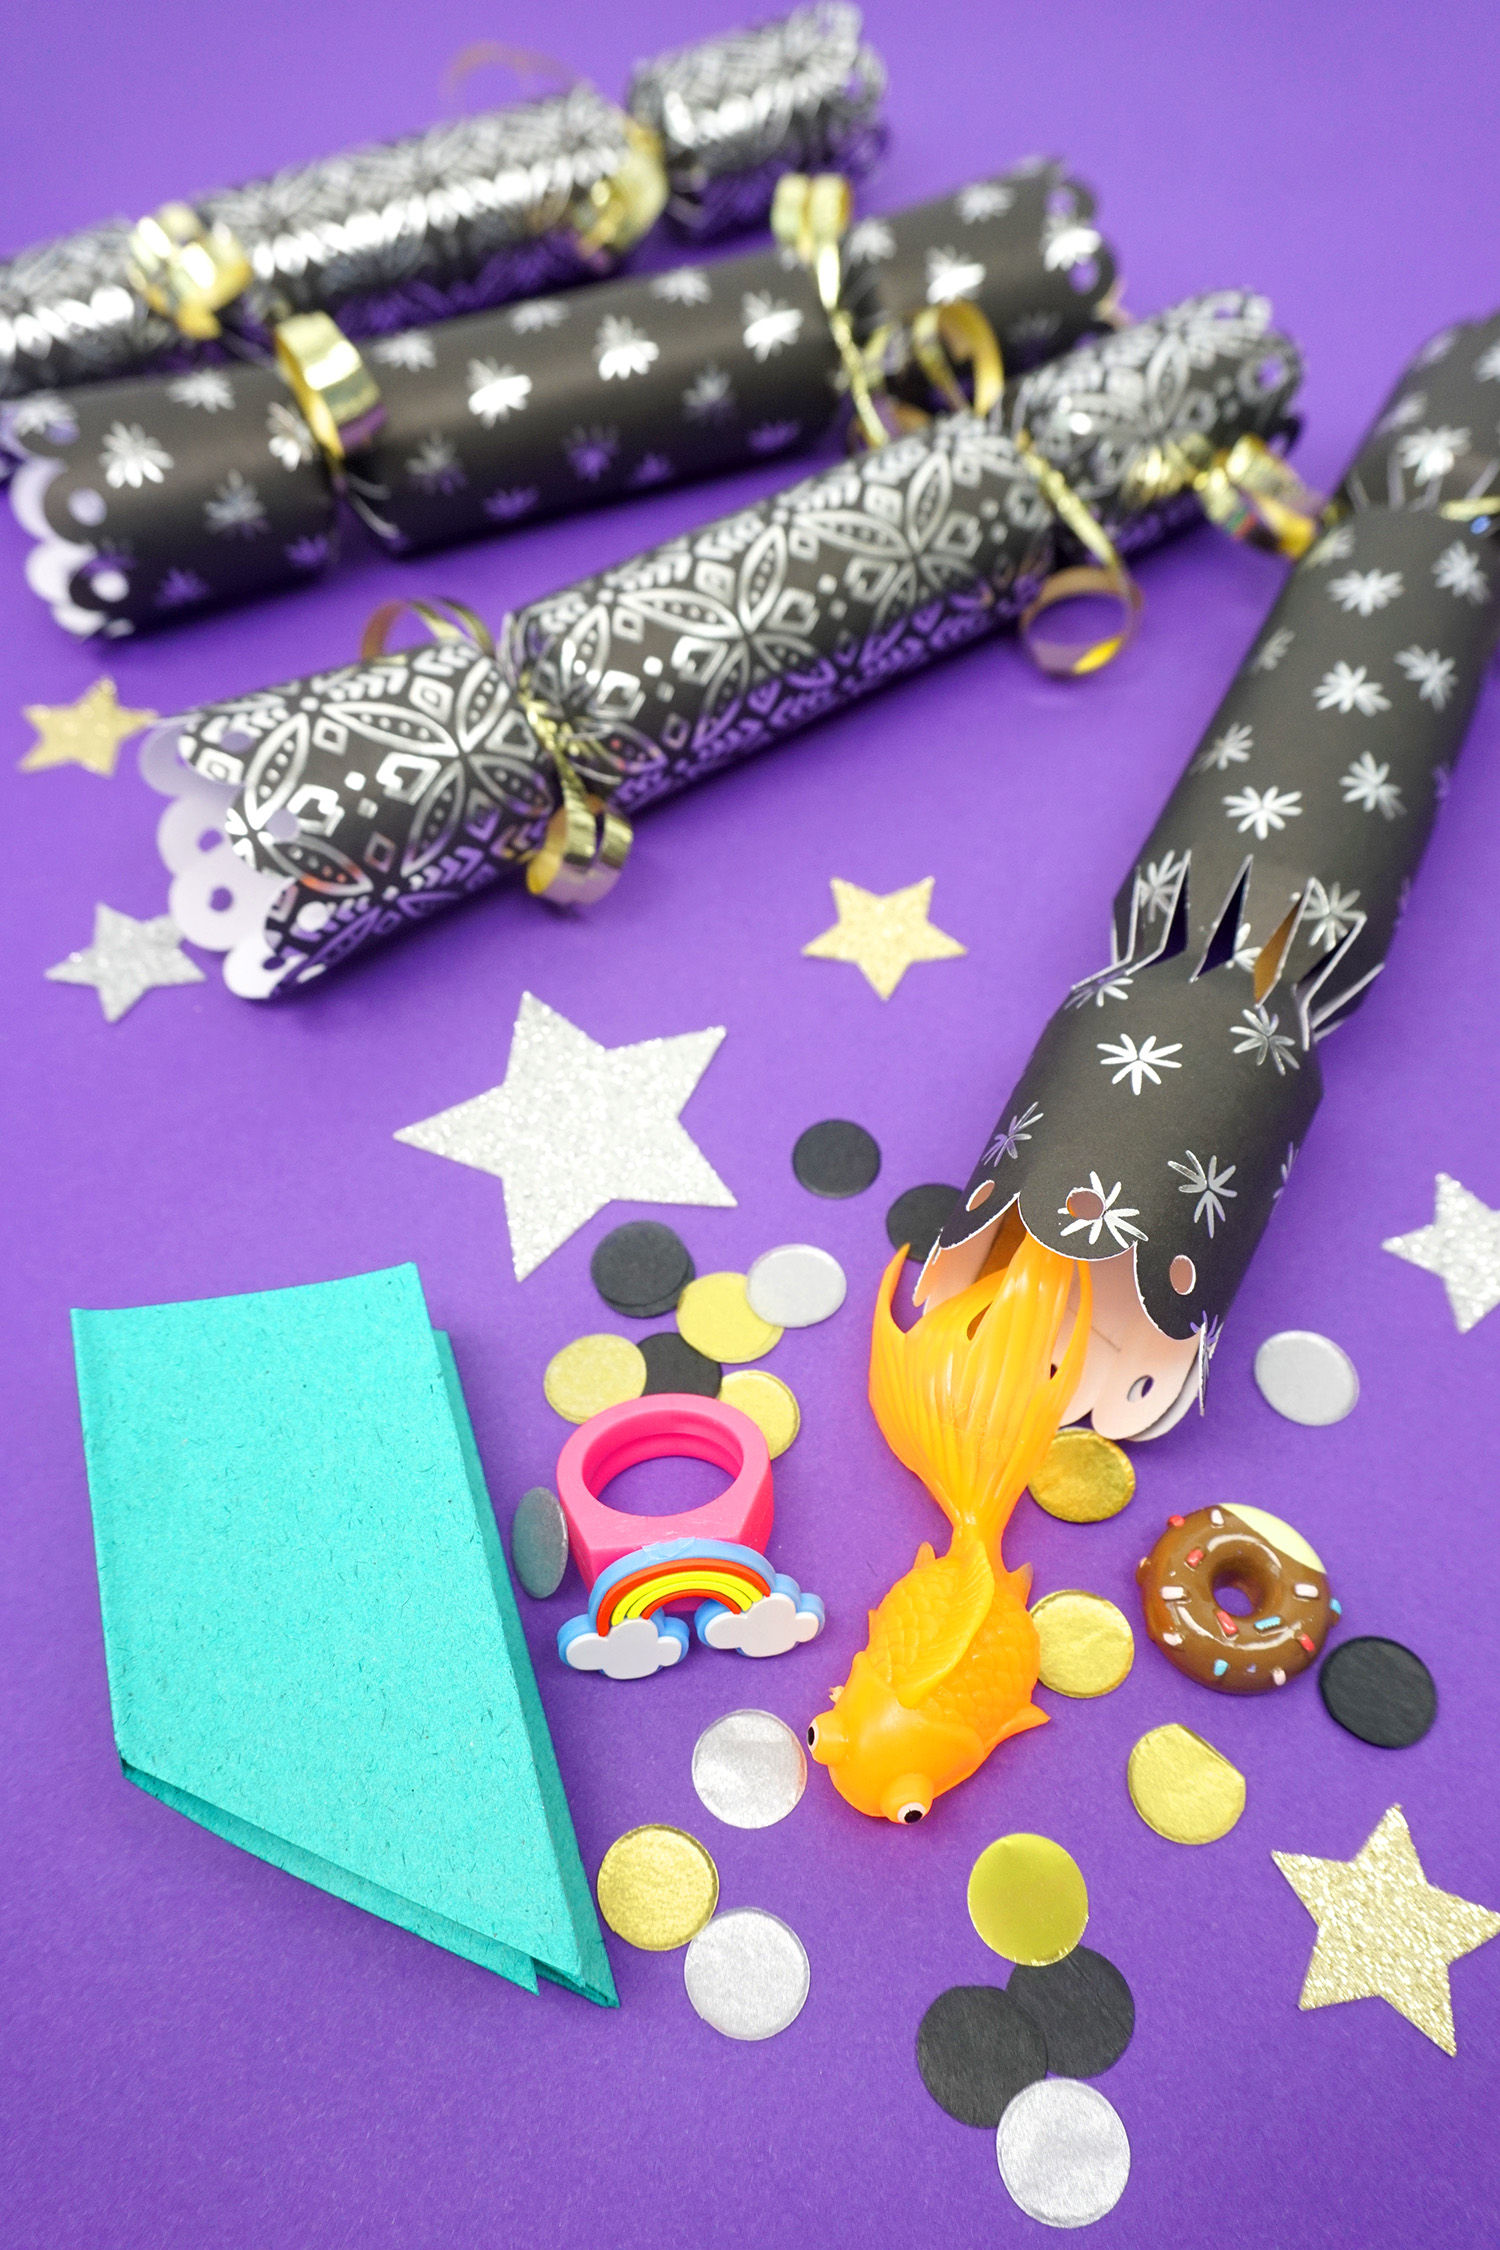 To open, grasp the ends of the crackers (making sure to hold on to ends of the cracker snaps!) and pull – the tube will tear open and the cracker snap will ...